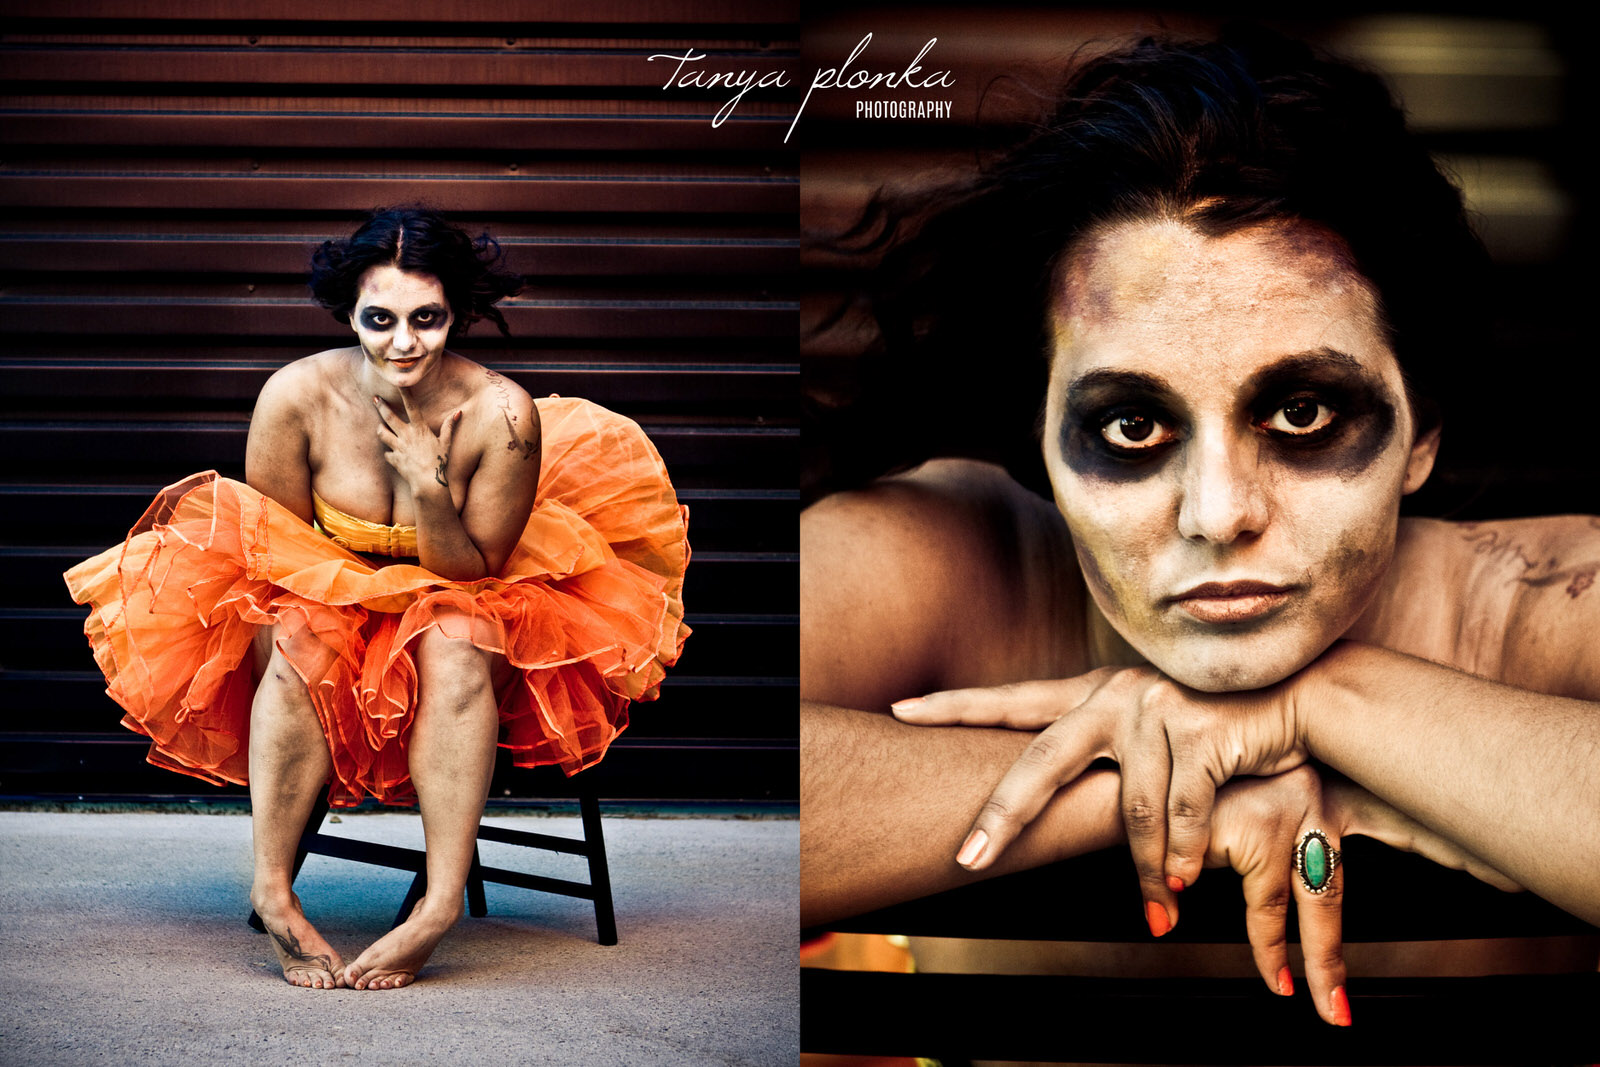 zombie model in poofy orange dress sitting on chair